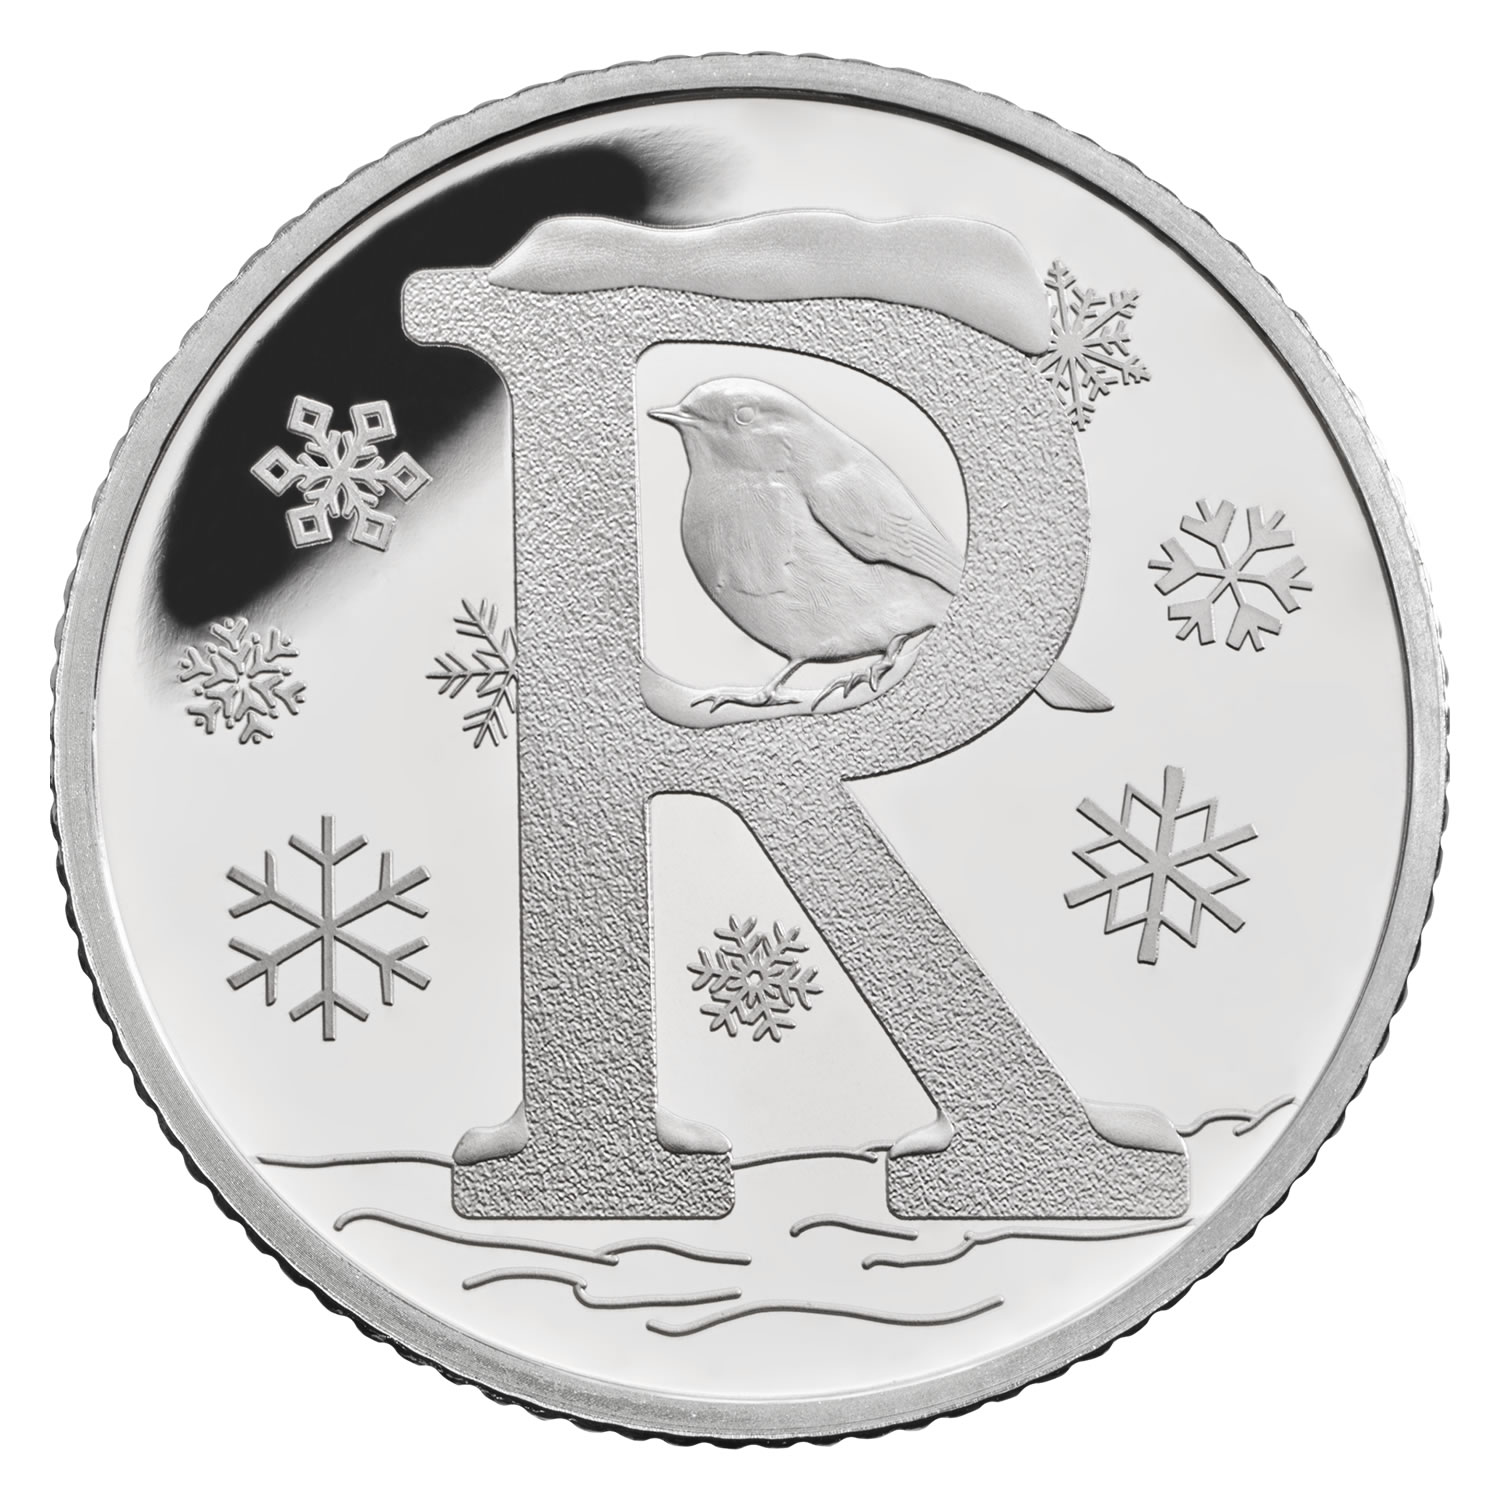 R - Robin 2018 UK 10p Silver Proof Coin